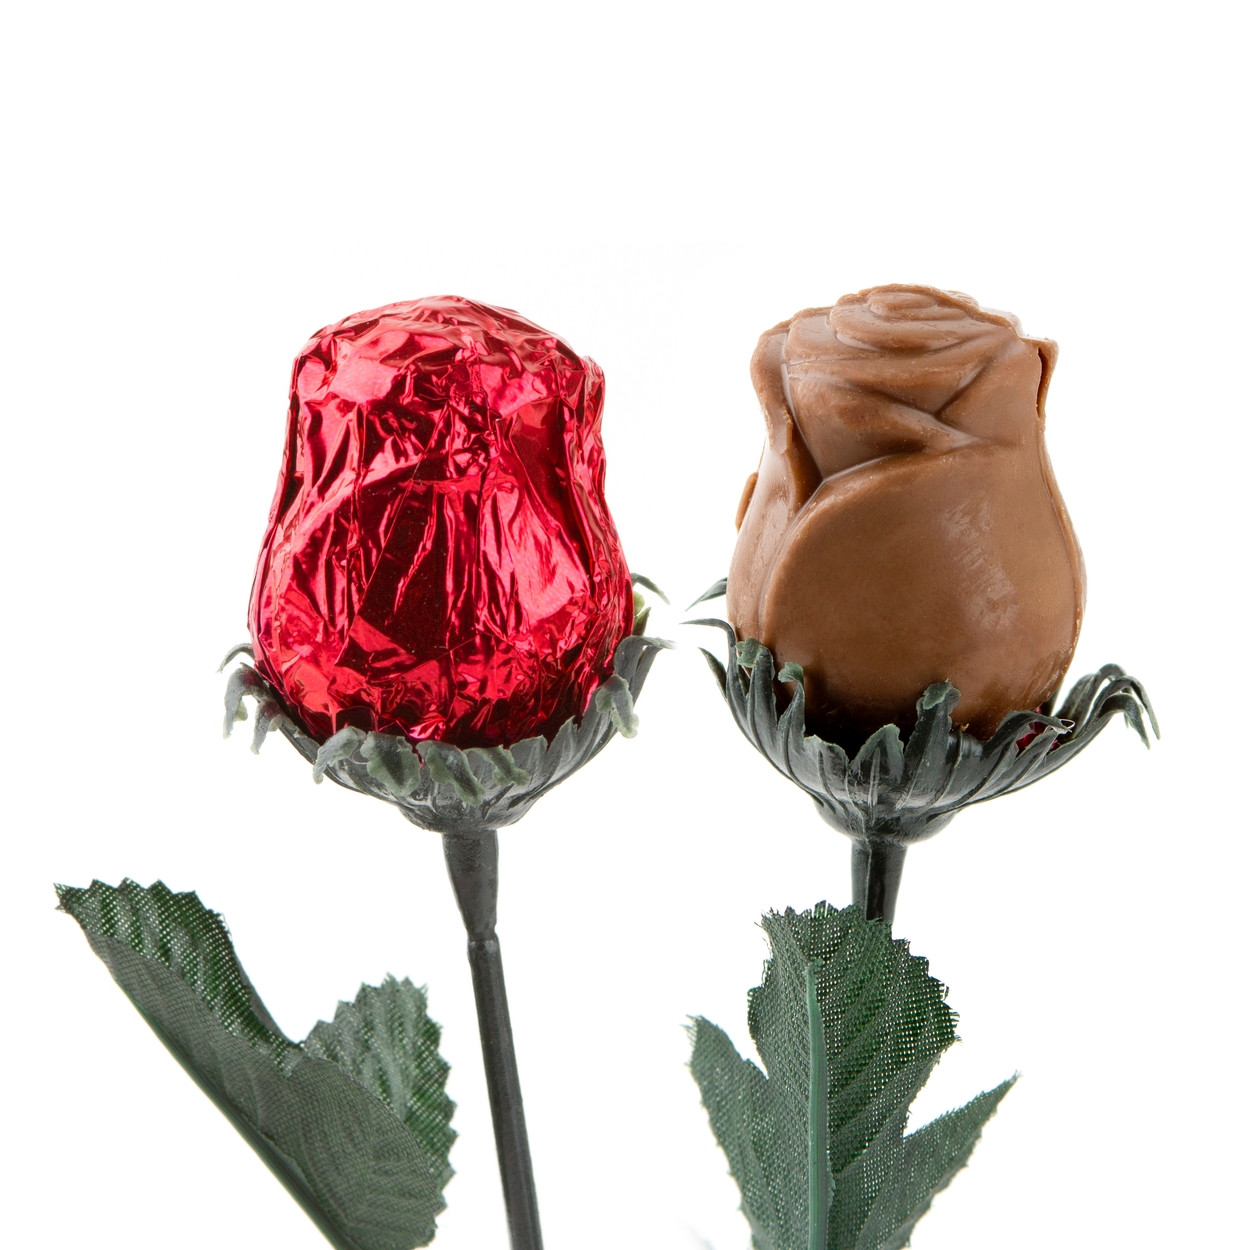 Chocolate Roses – Buy Chocolate Roses in Bulk by Pound • Oh! Nuts®